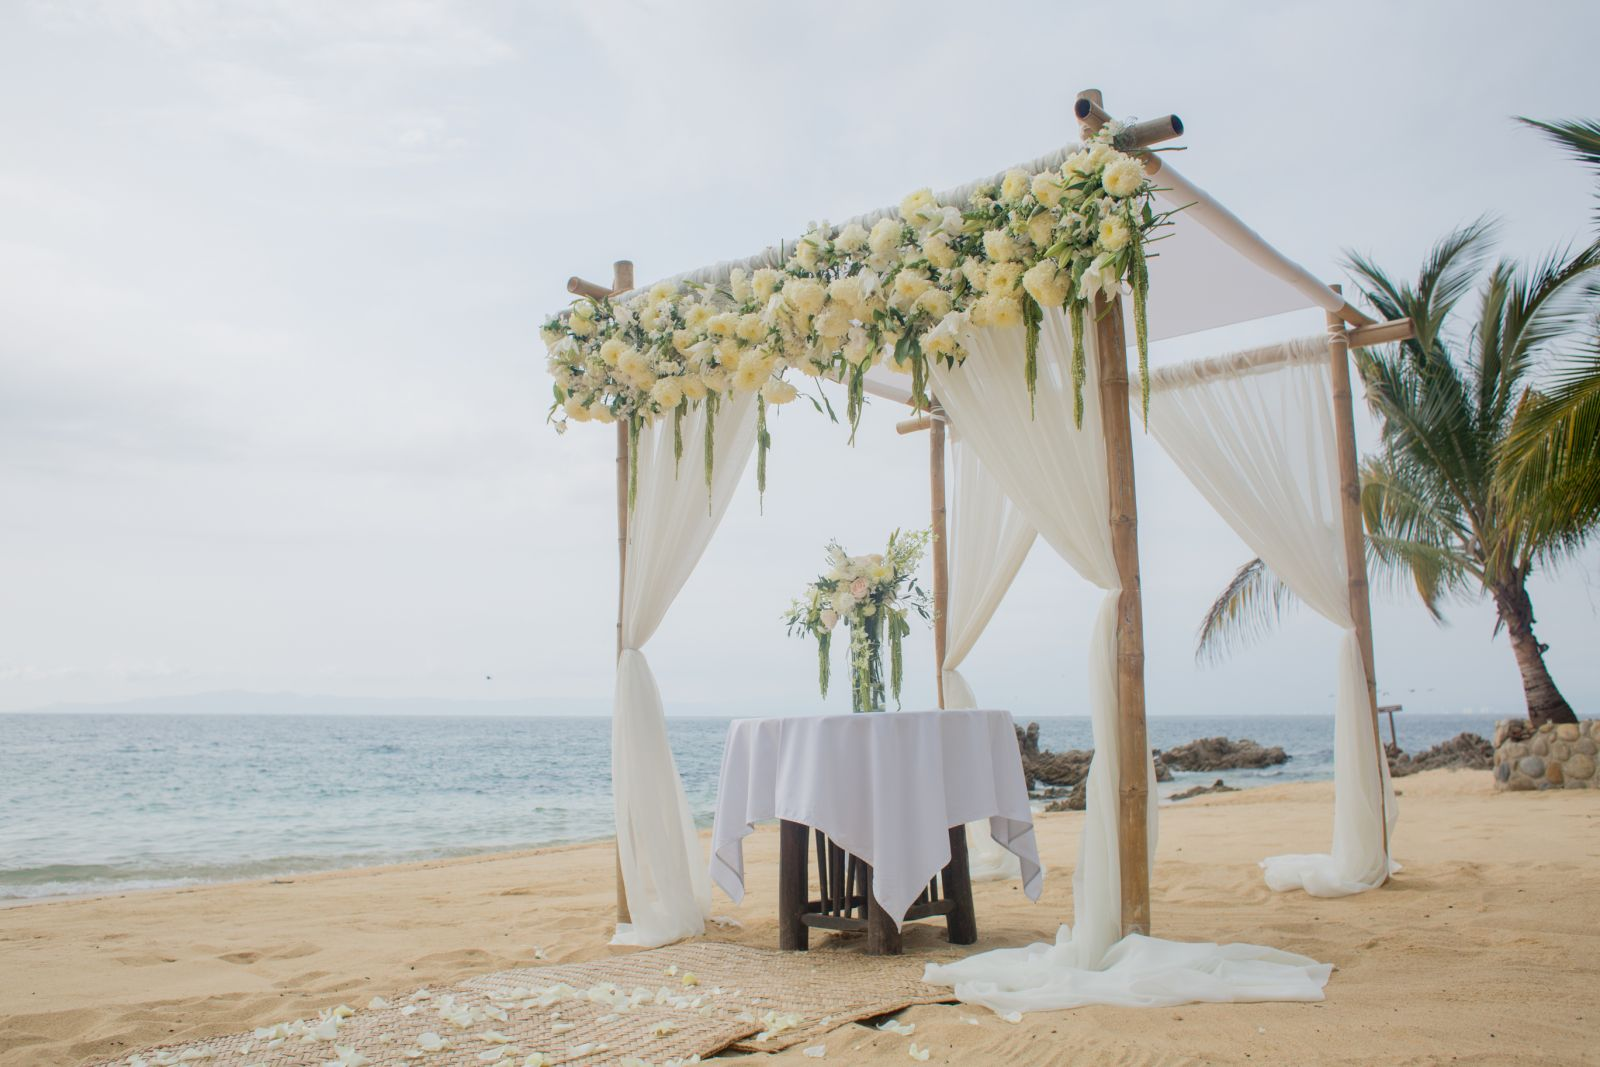 Beach chuppah trendy style-Beautiful and original style that creates trends.